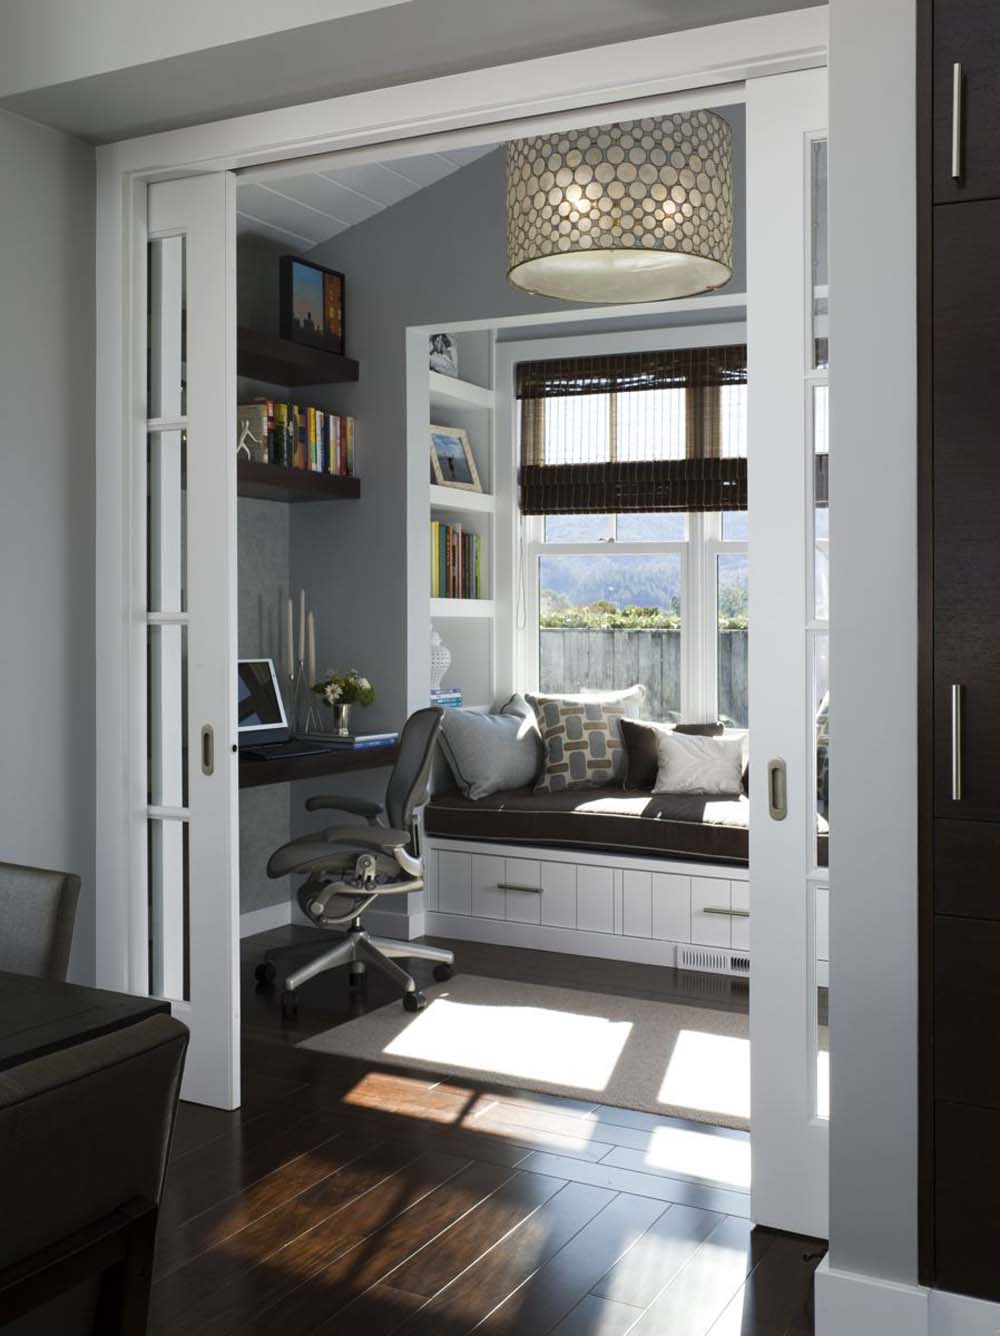 Top-27-Cozy-Reading-Nooks-That-Will-Inspire-You-To-Design-One-Yourself-In-Your-Home-homesthetics-12